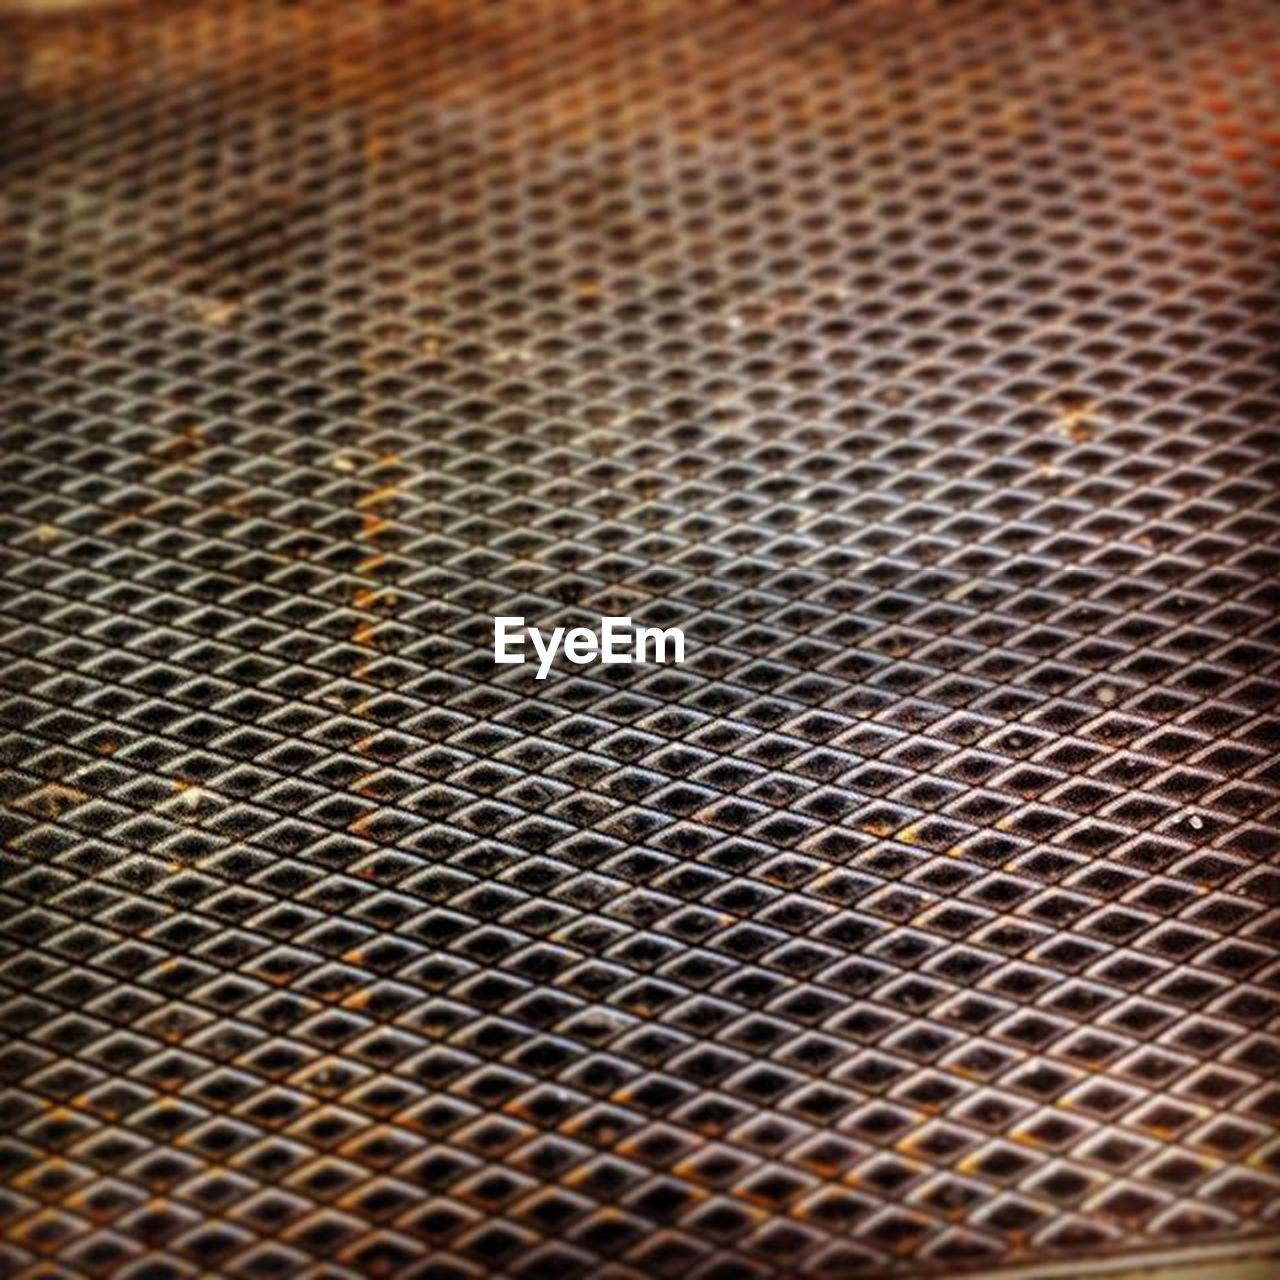 metal, pattern, backgrounds, full frame, no people, metal grate, textured, close-up, day, indoors, technology